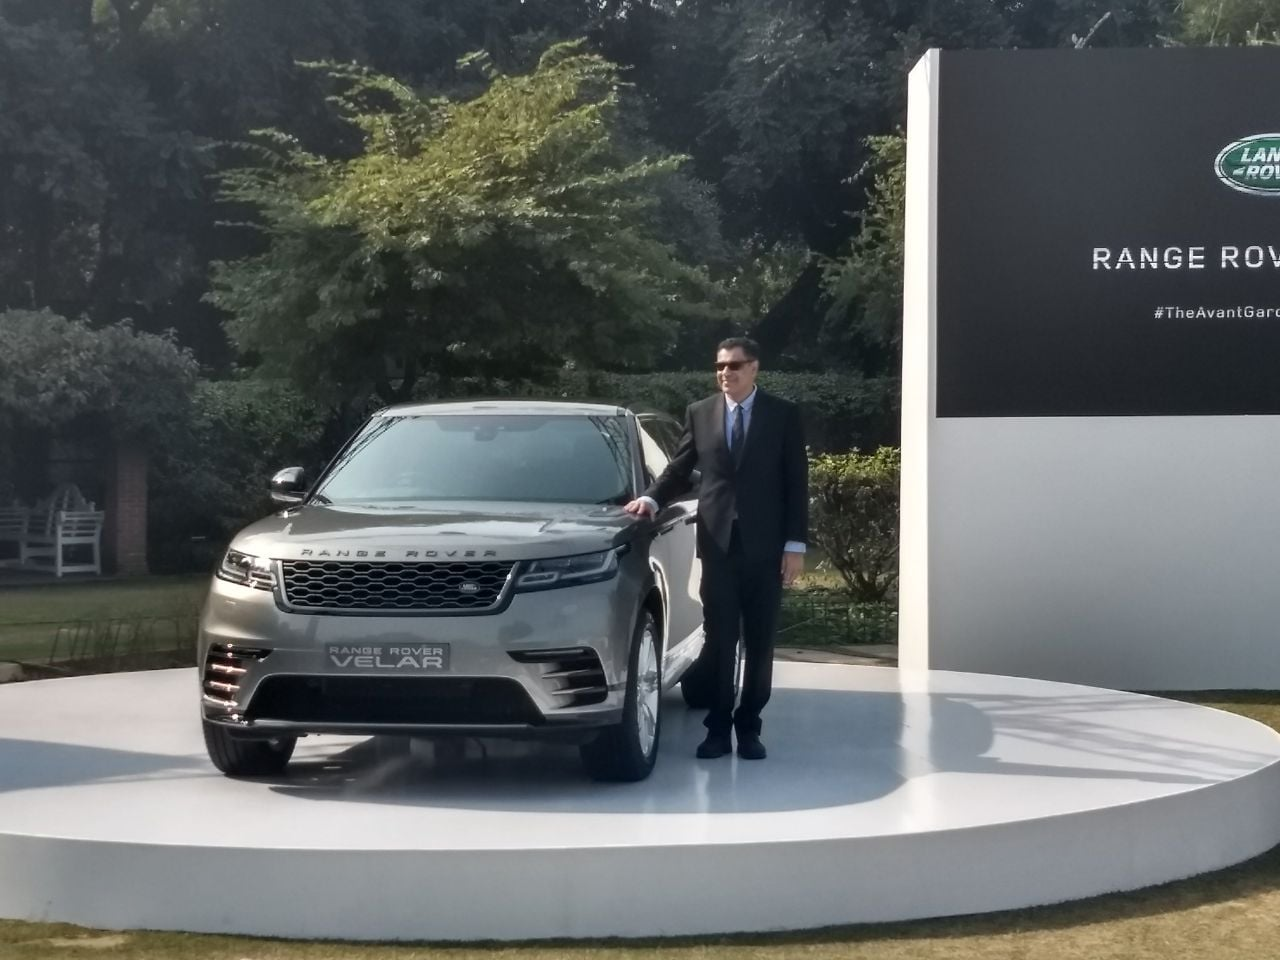 JLR drives in Range Rover Velar, price starts at Rs78.83 lakh